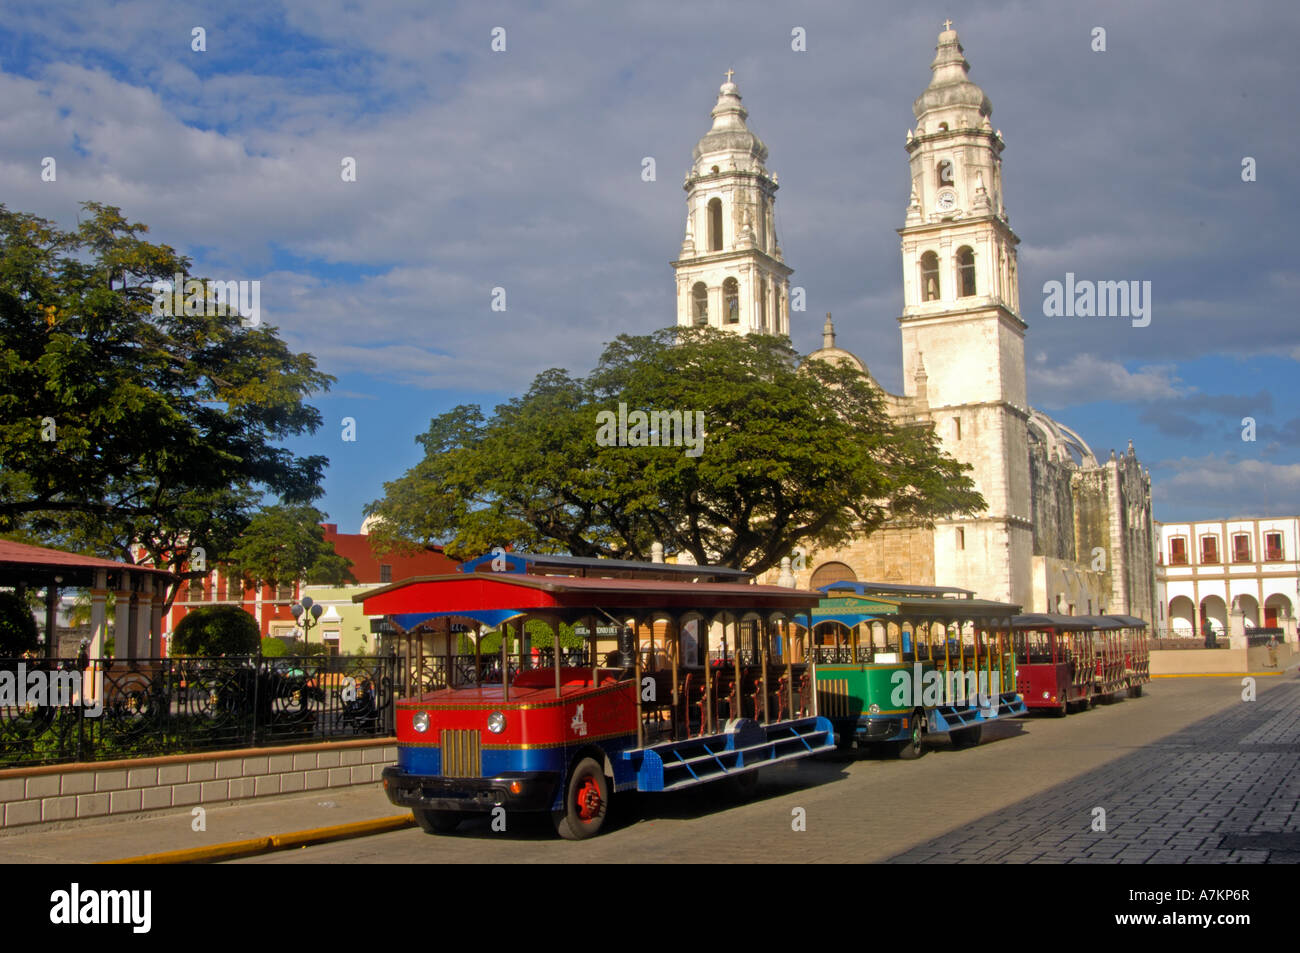 Tranvia parked by Parque Principal in Campeche Stock Photo